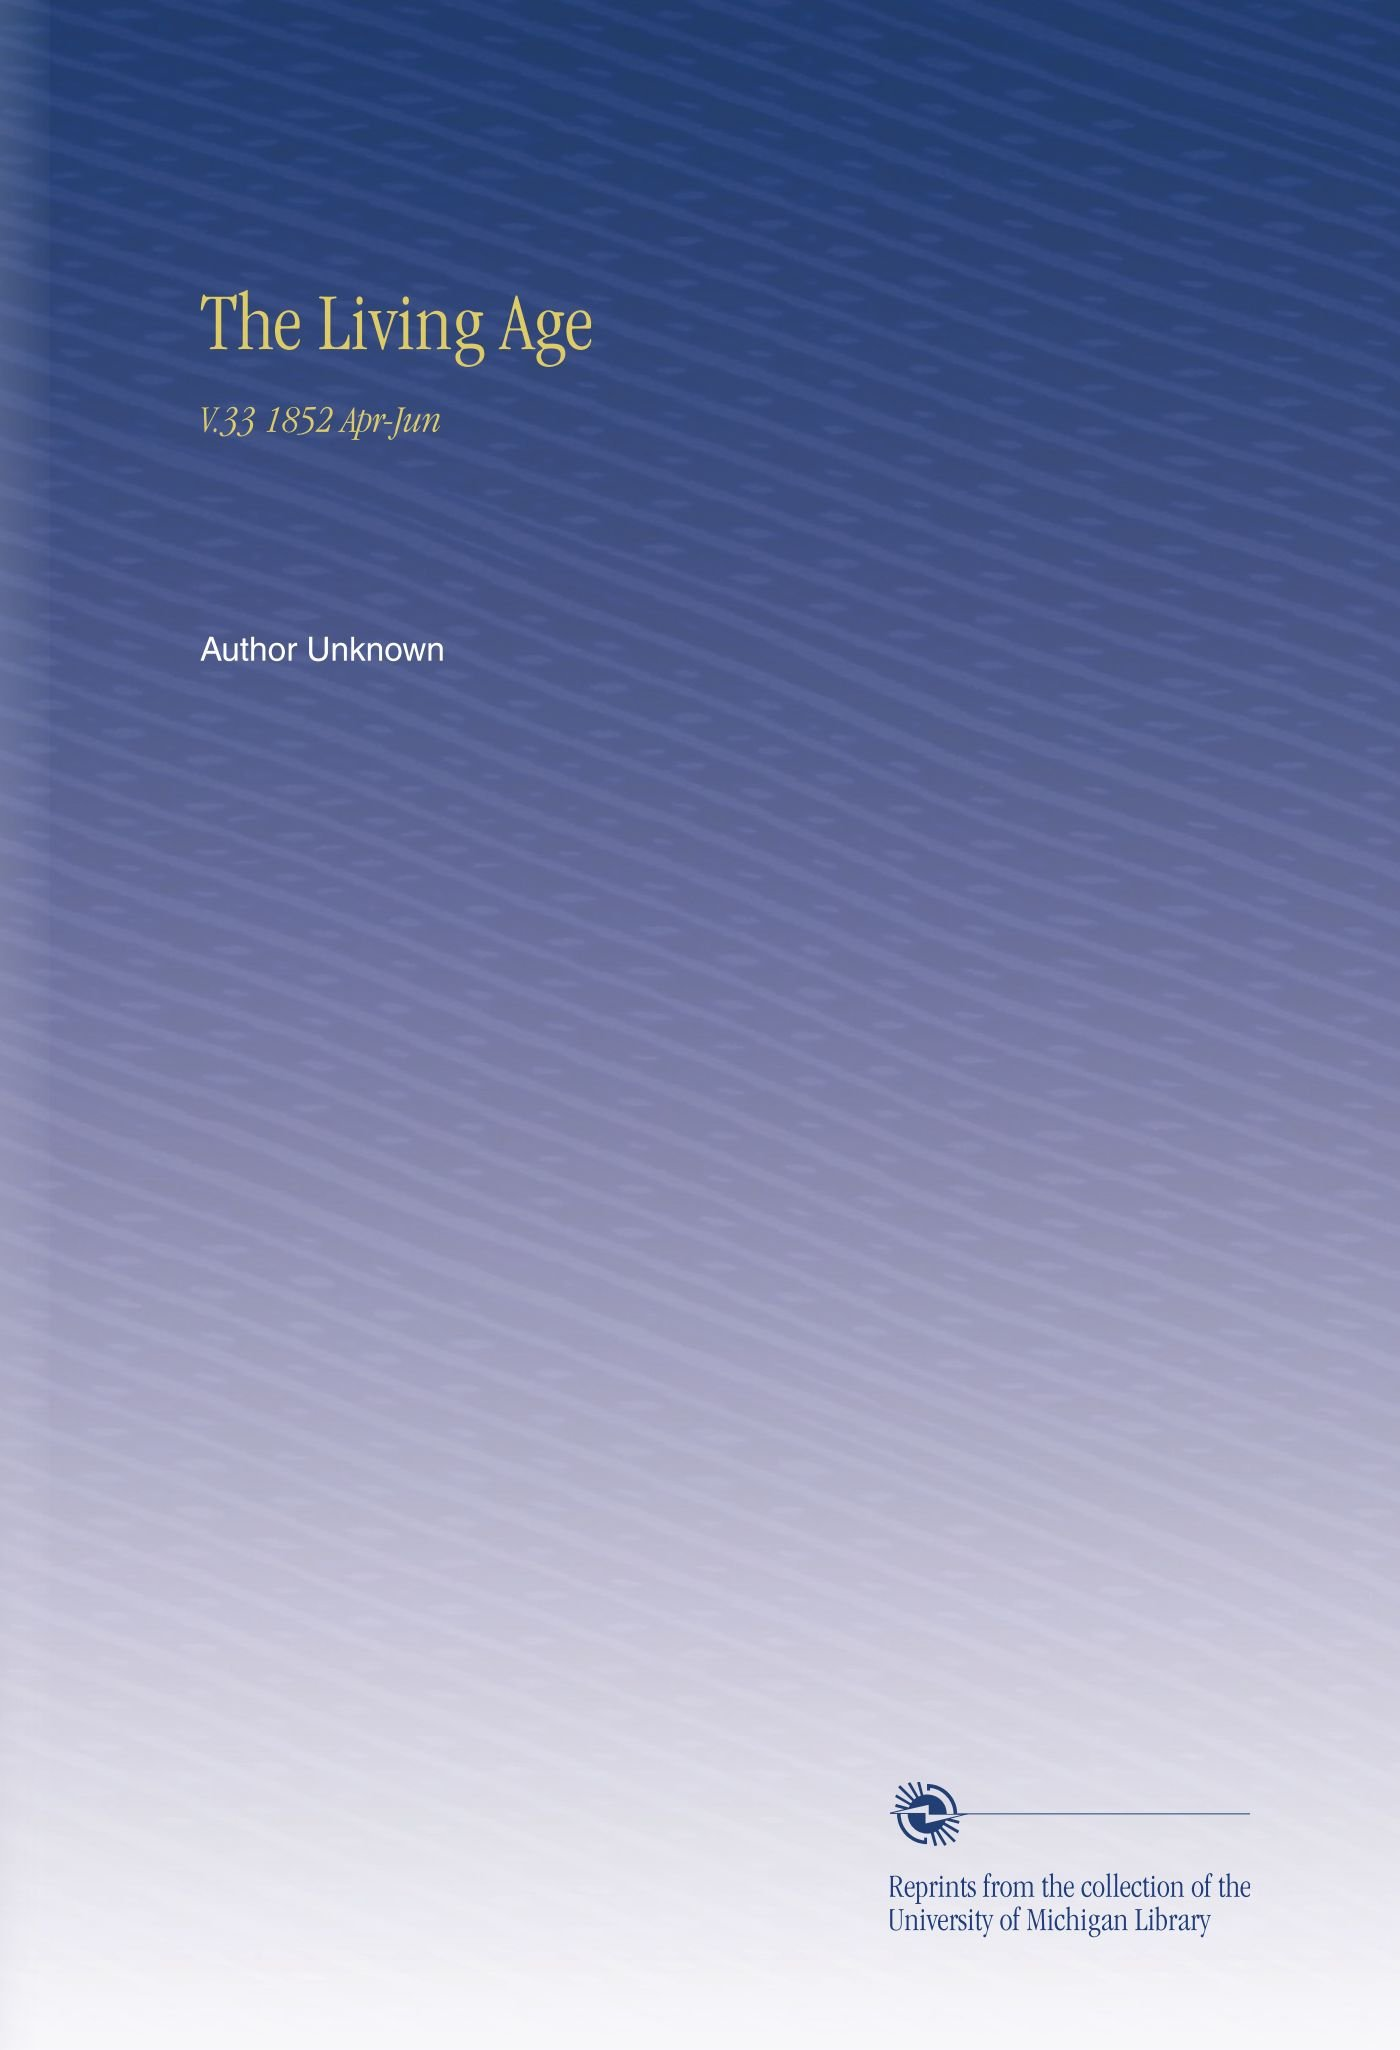 Download The Living Age: V.33 1852 Apr-Jun ebook